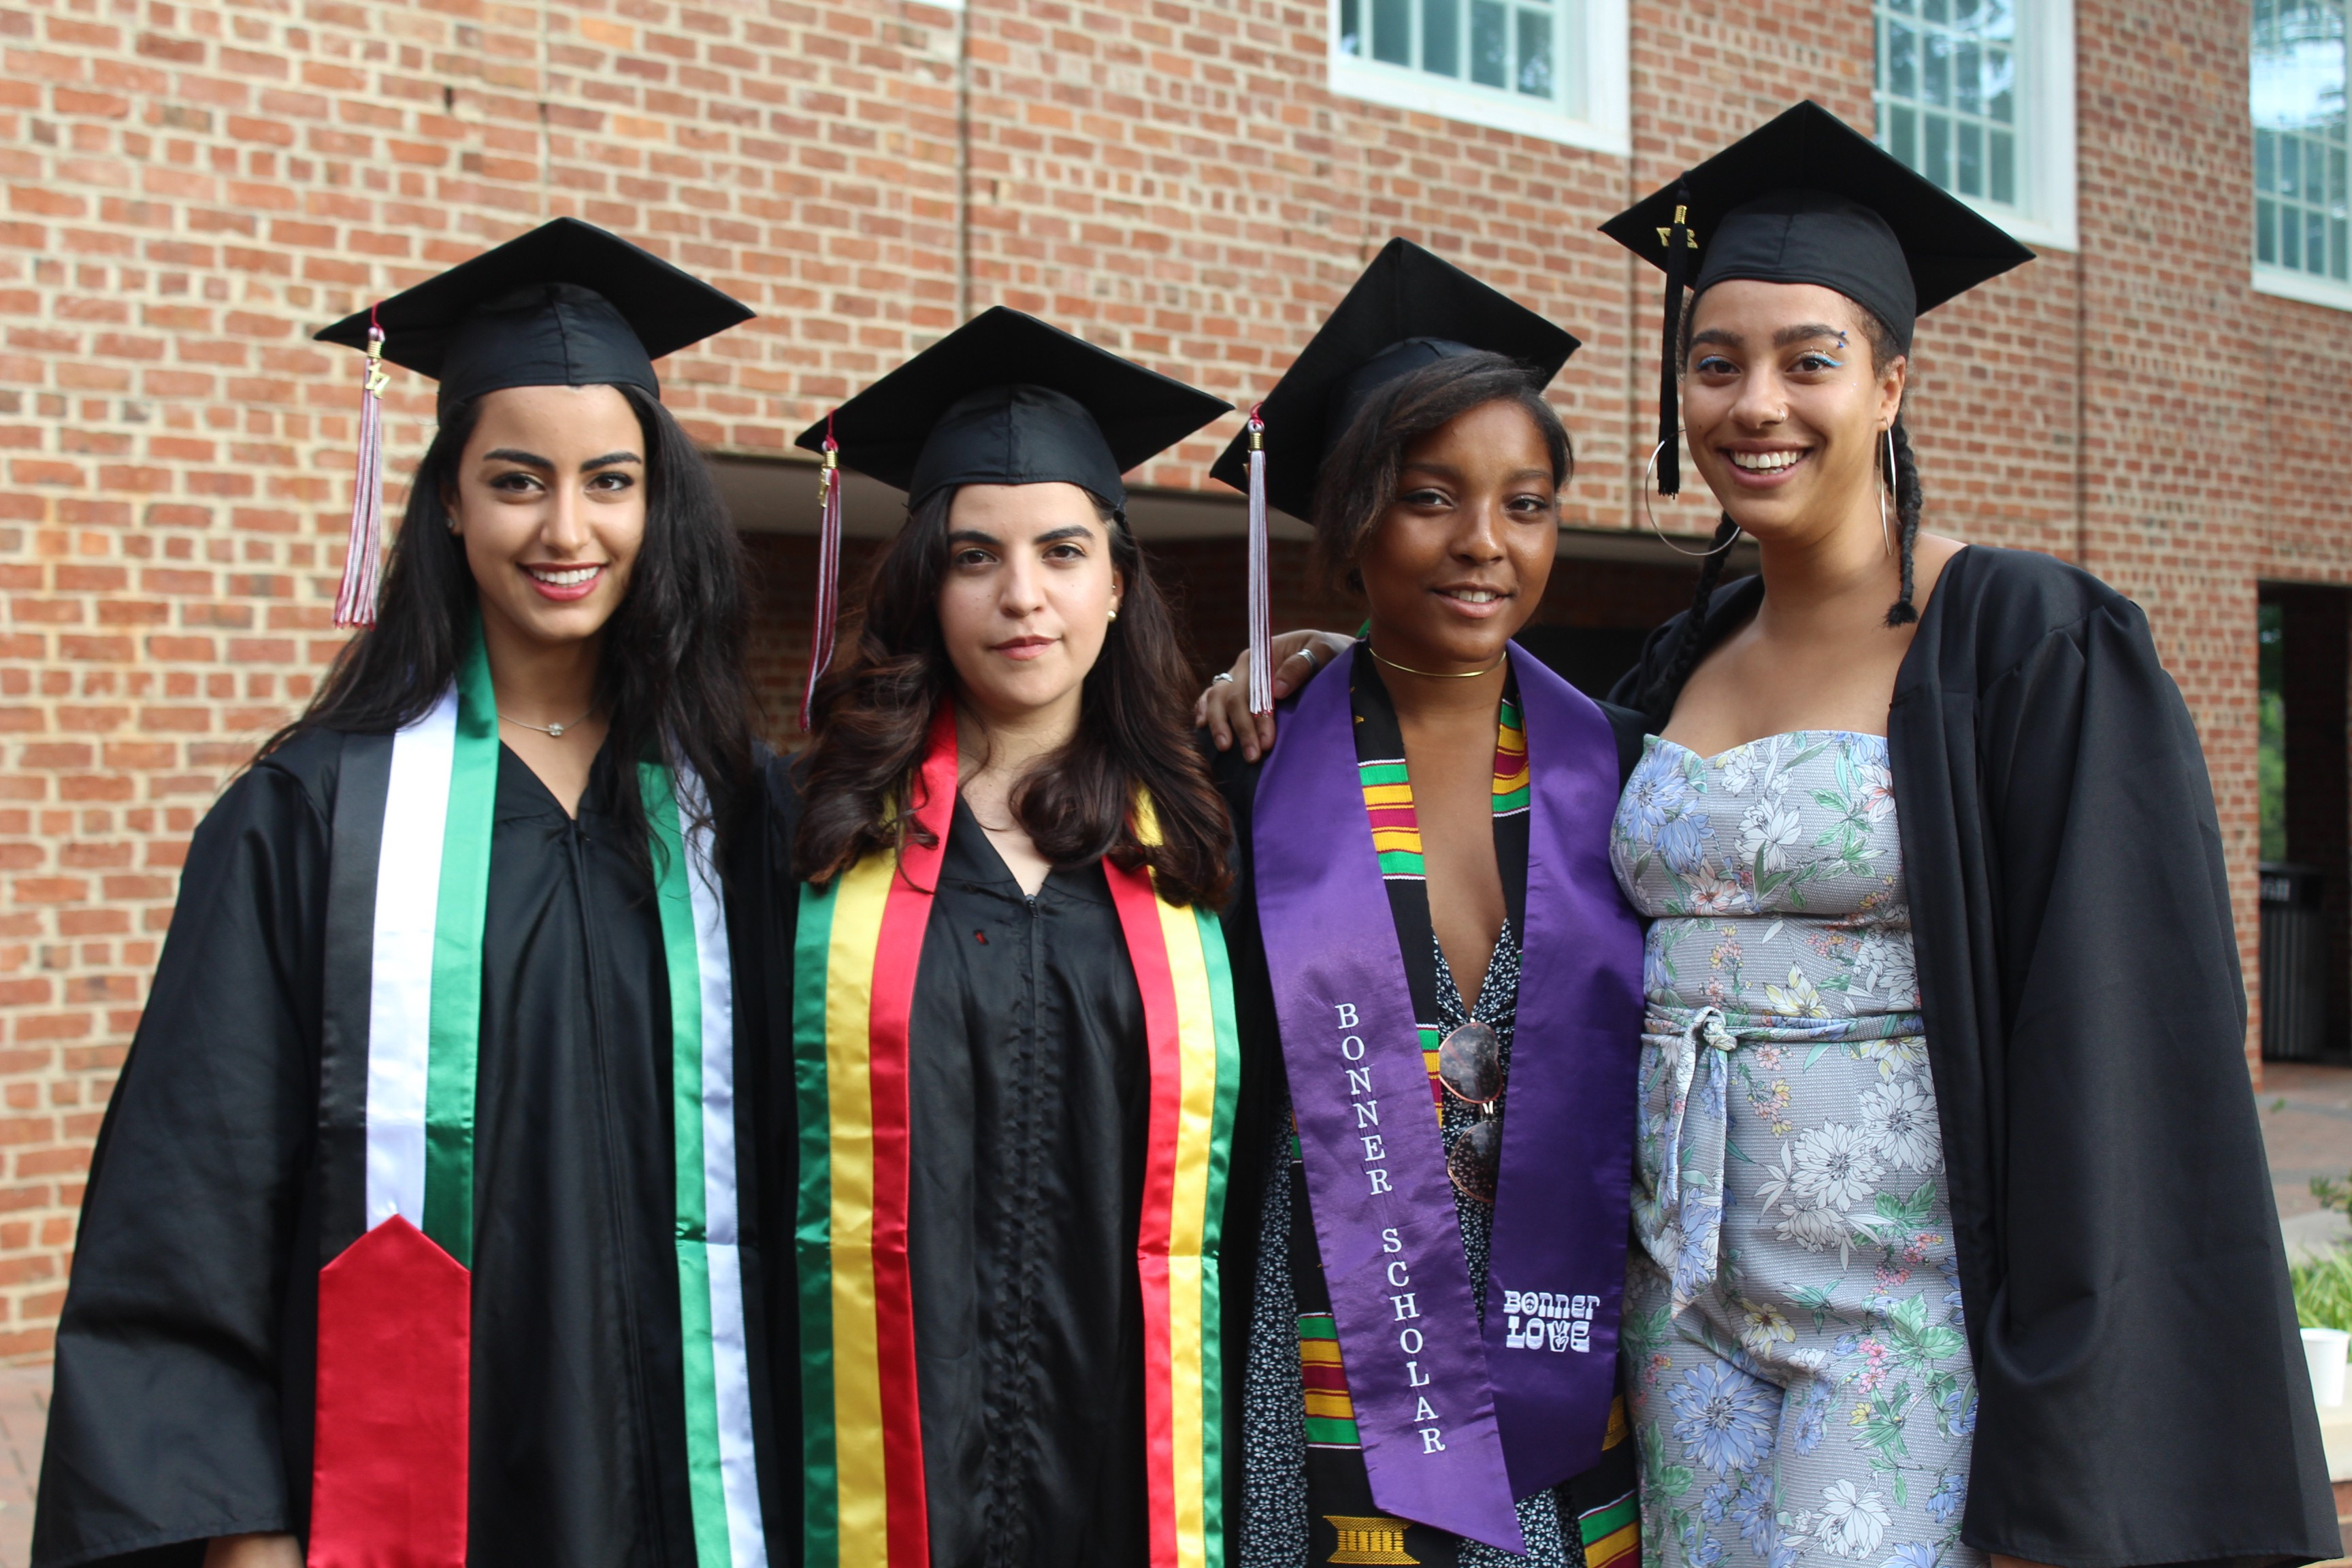 Grads snag an opportunity to take a photo together before Commencement.